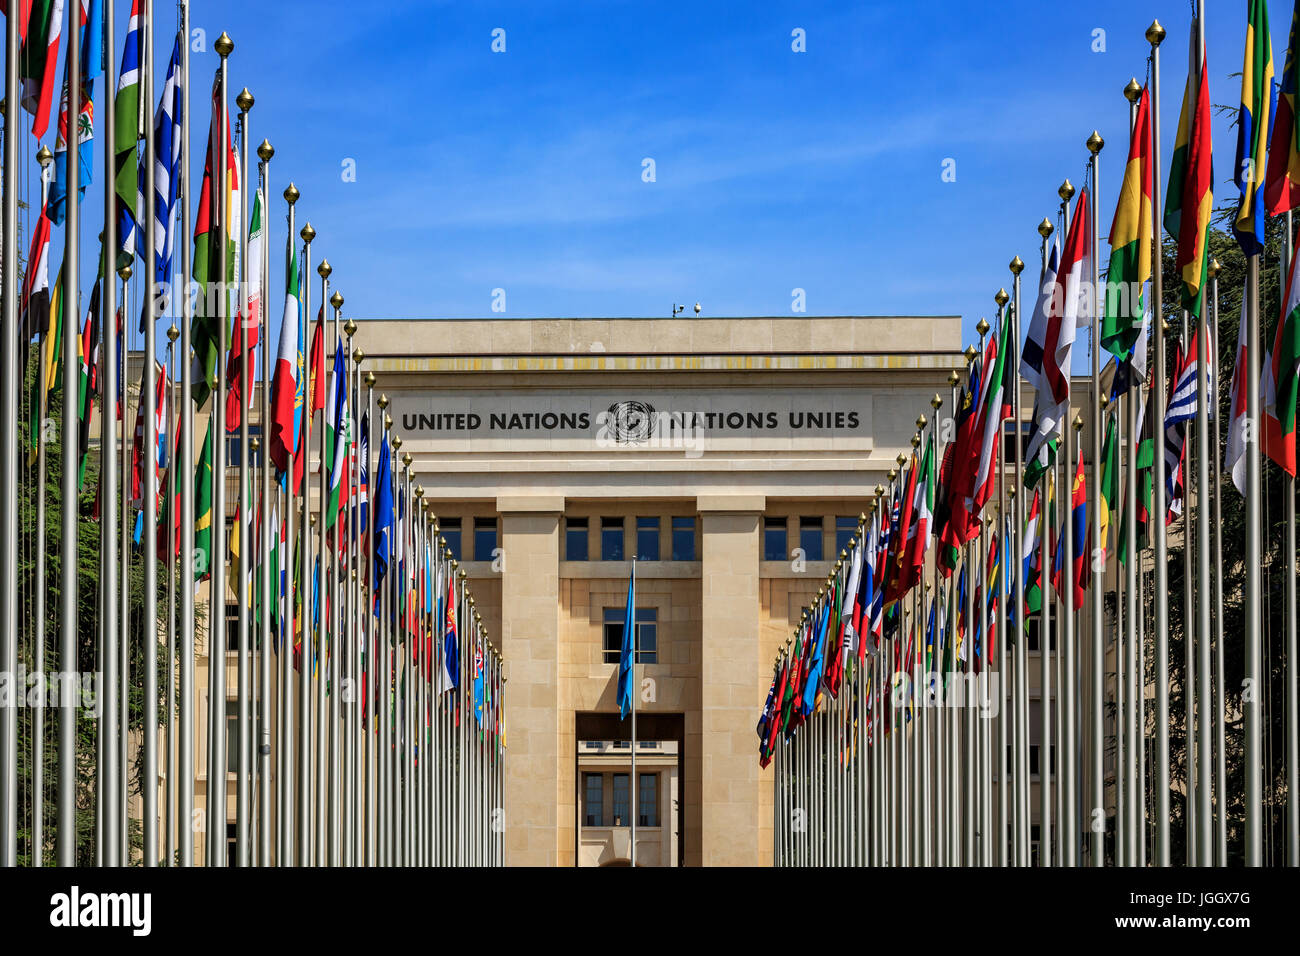 Flagpoles in front of United Nations, UN, Palais des Nations, Geneva, Switzerland, Europe - Stock Image